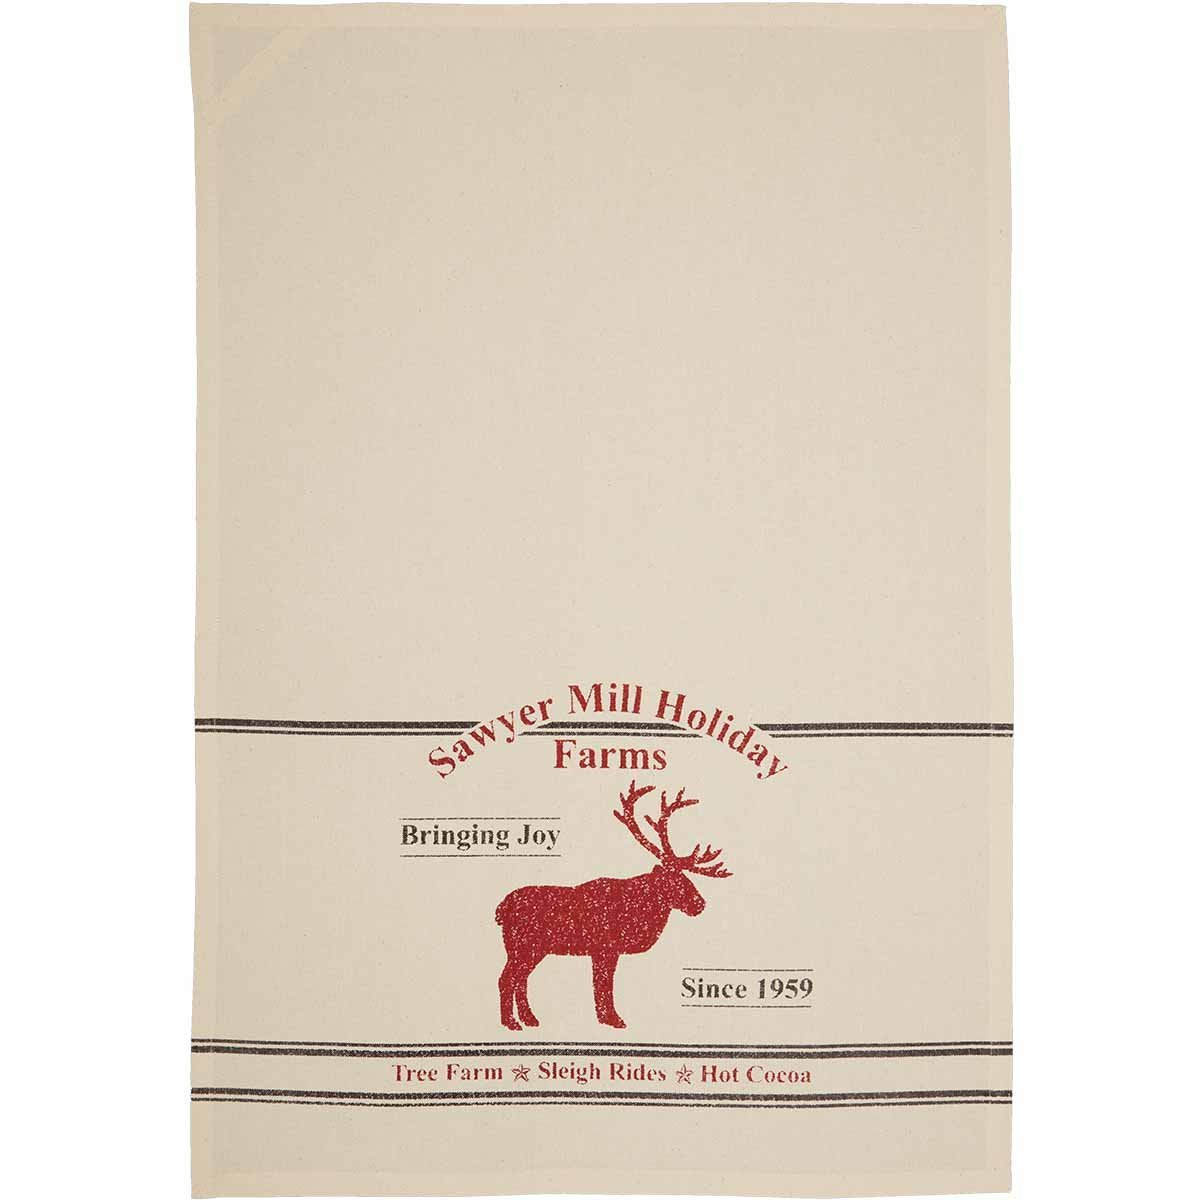 Sawyer Mill Holiday Reindeer And Recipes Unbleached Natural Muslin Tea Towel Set of 3.